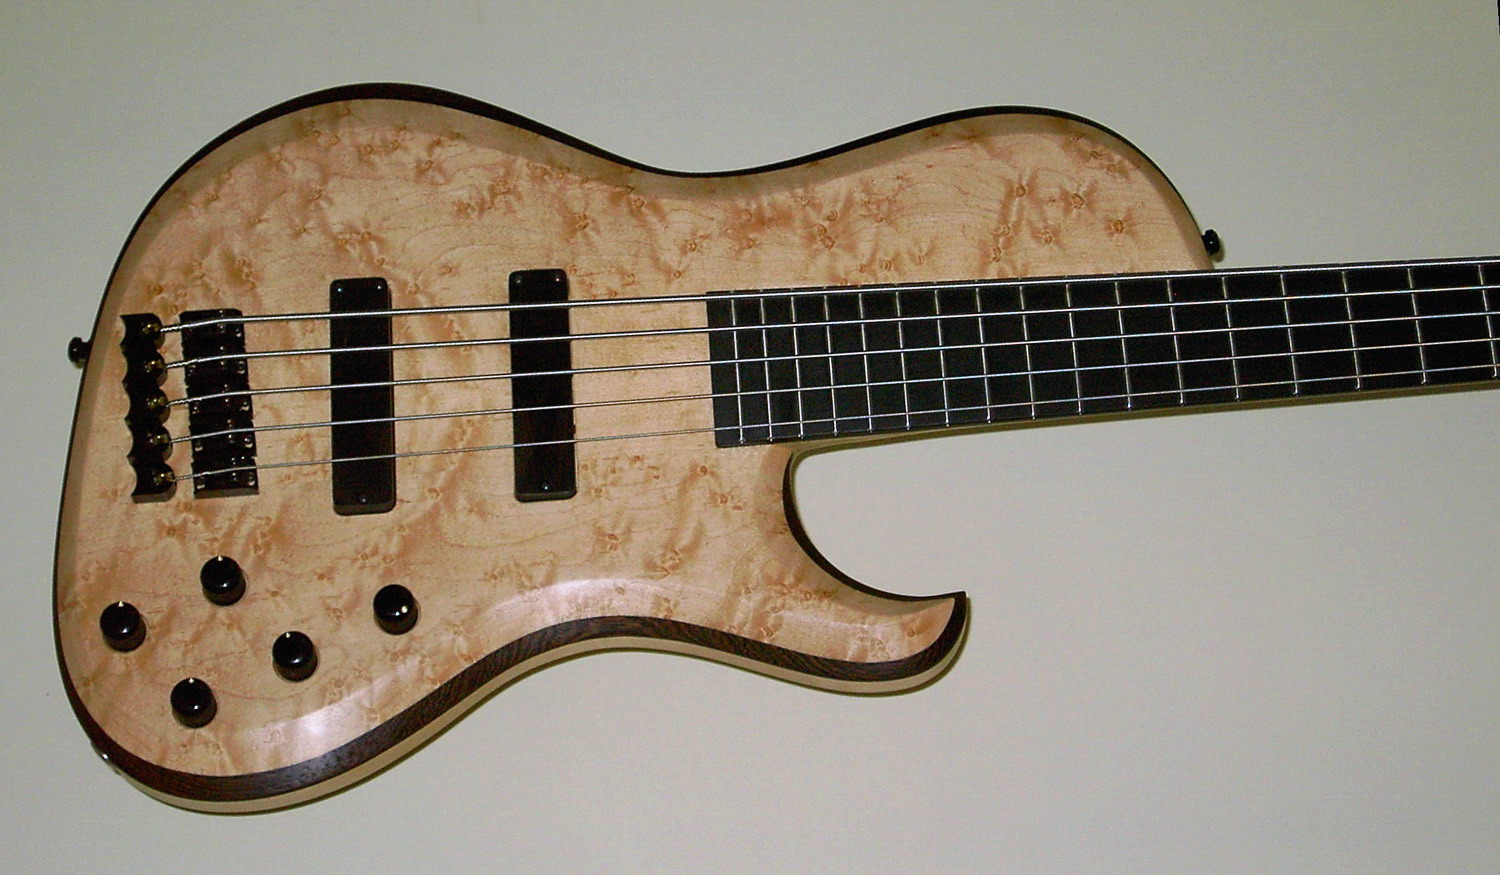 Body Birdseye Maple - Wenge